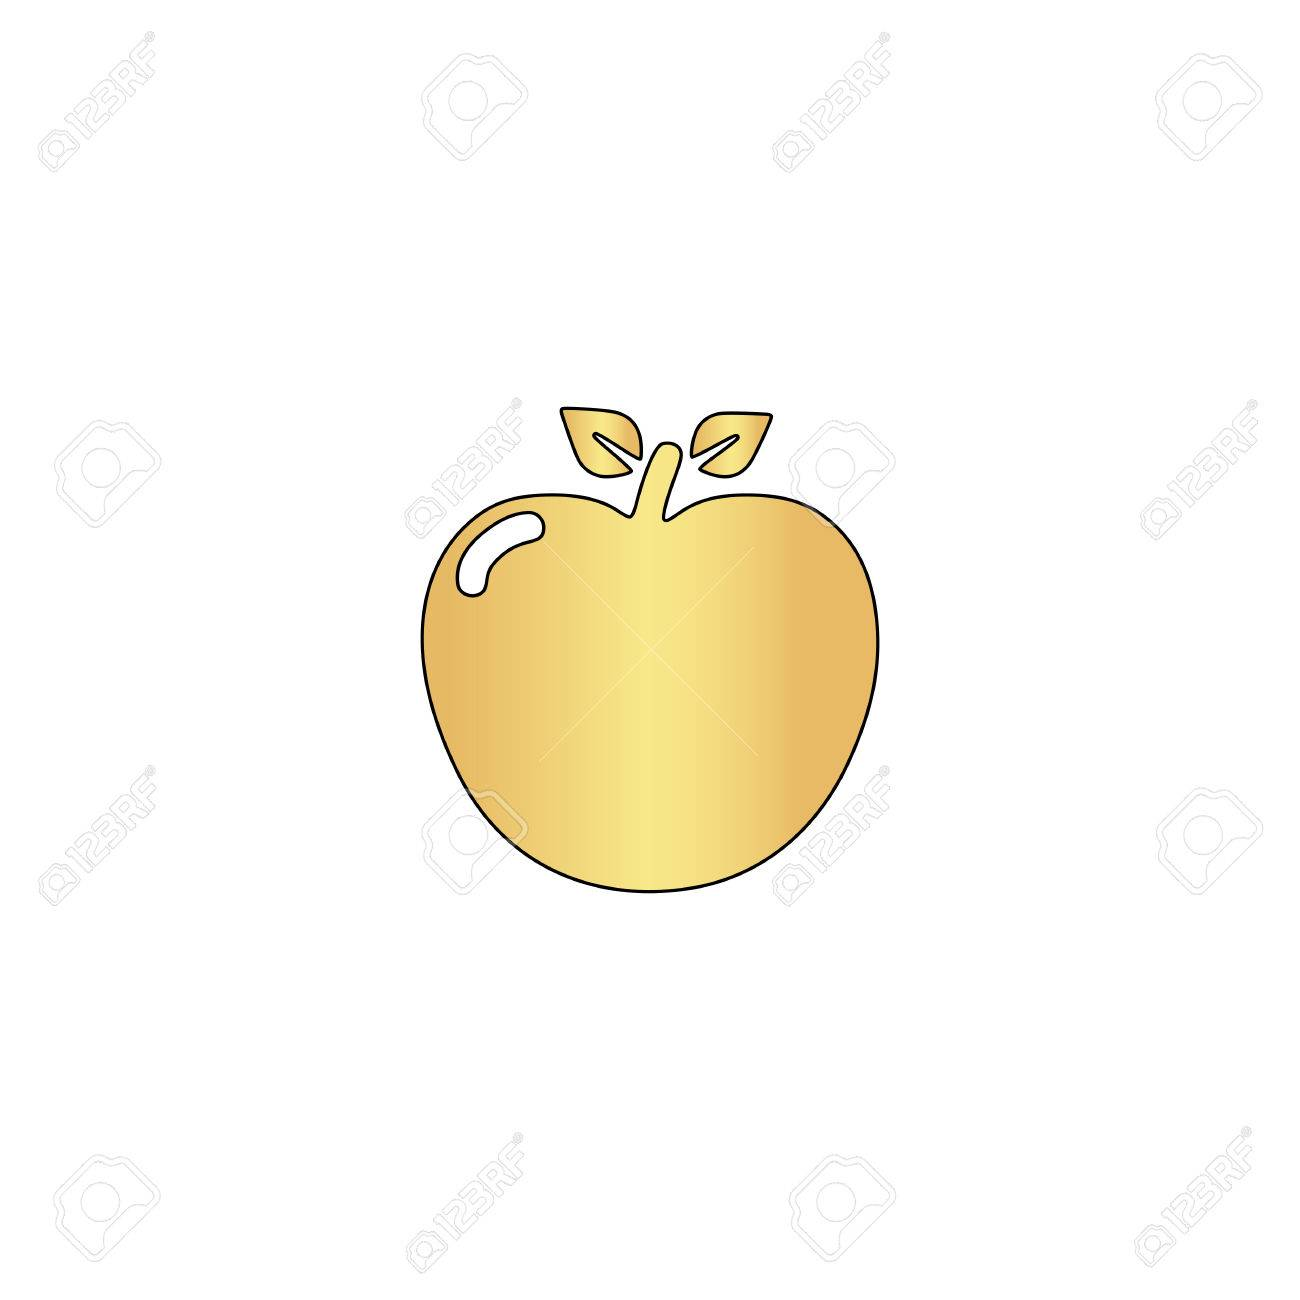 Apple Gold Vector Icon With Black Contour Line Flat Computer